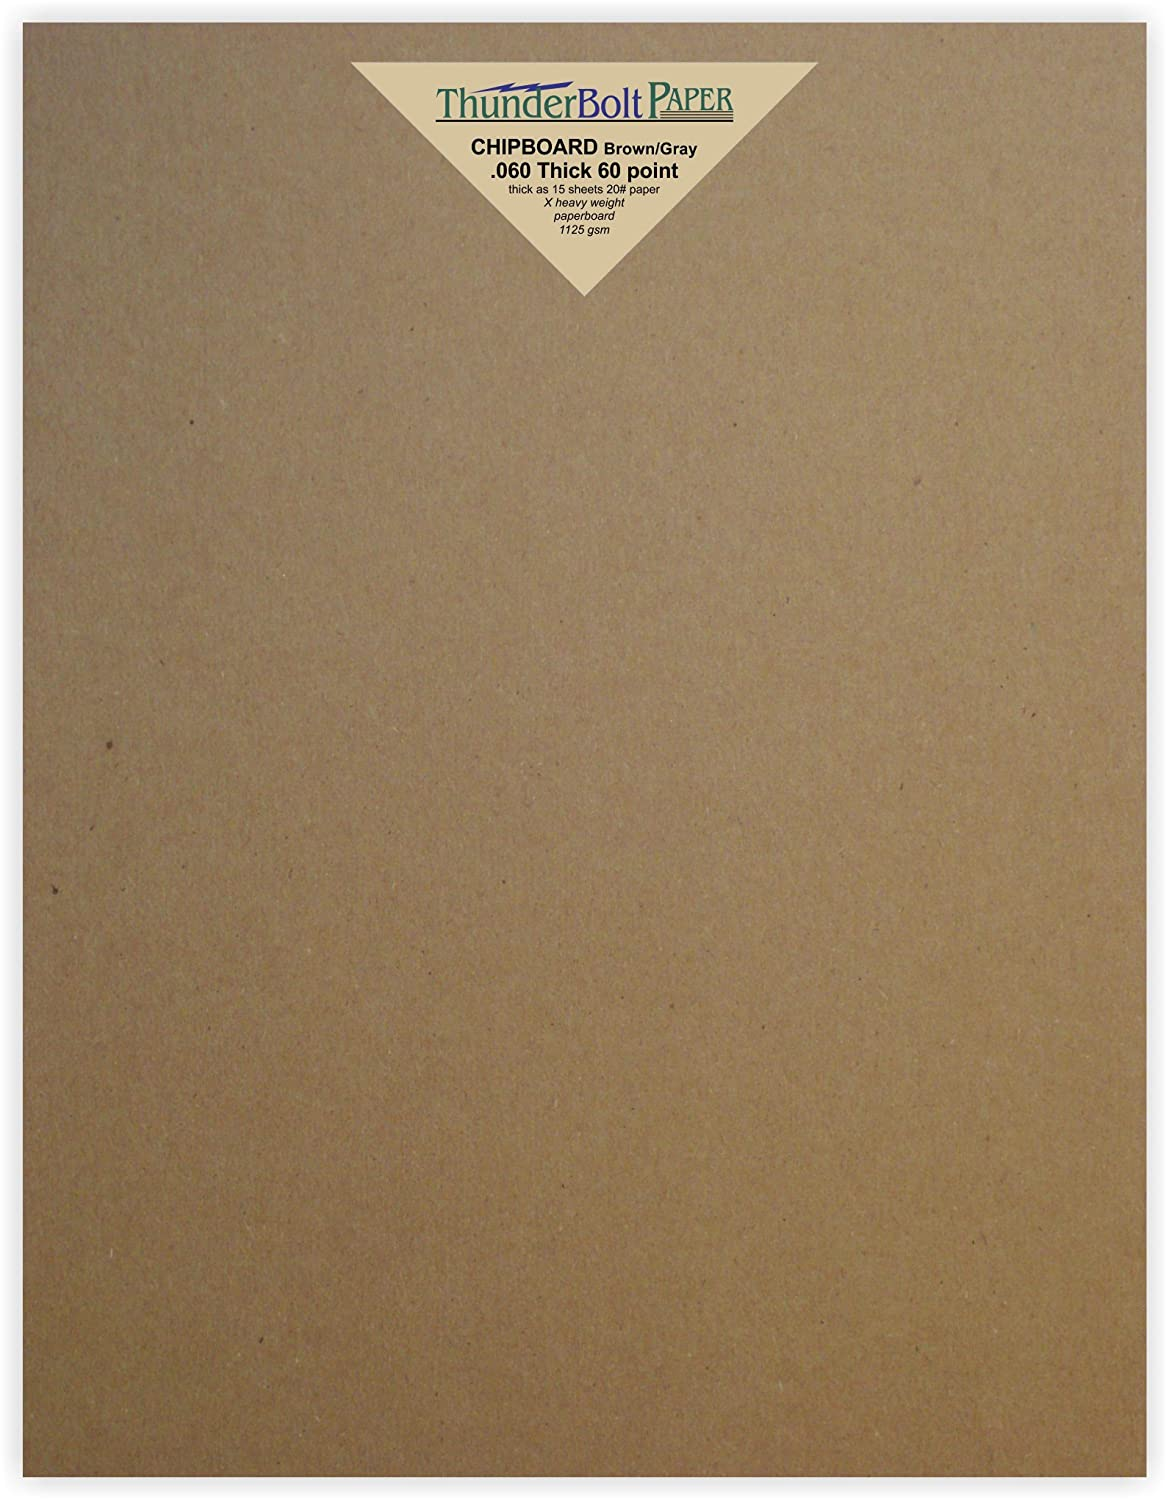 Heavy Weight Brown Kraft Cardboard for Scrapbooking /& Picture Frame Backing Point .050 Caliper Thick 50pt Paper Board 50 Chipboard Sheets 11 x 17 inch MagicWater Supply